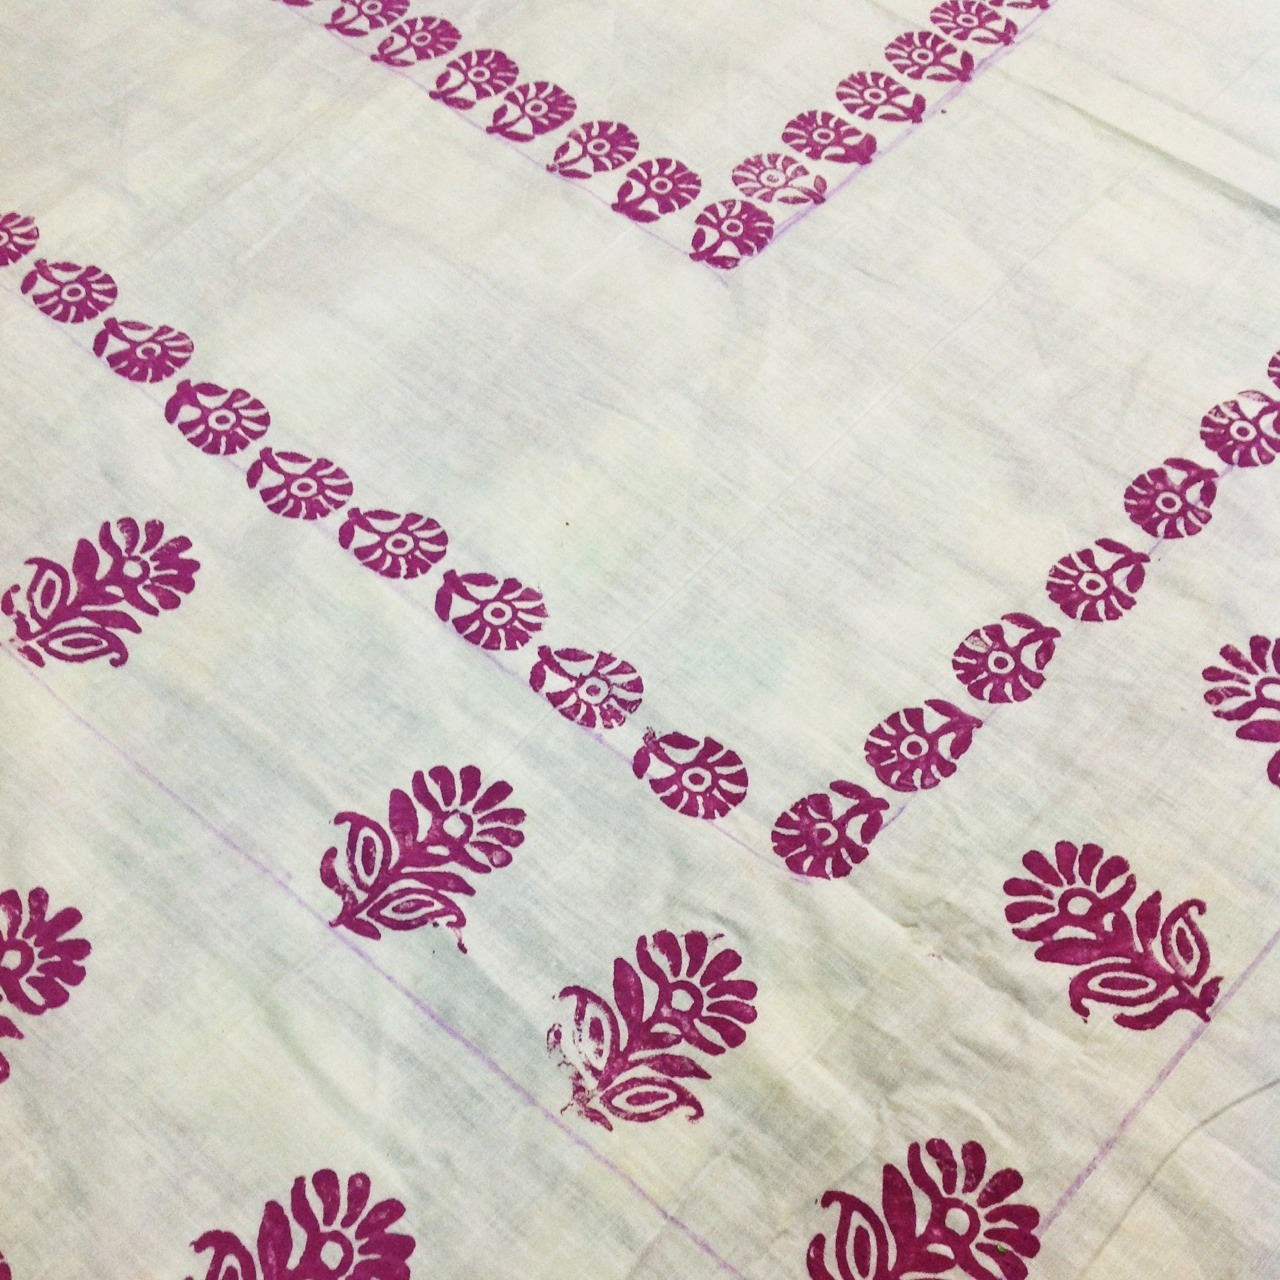 We used two different wooden stamps to print this cotton fabric